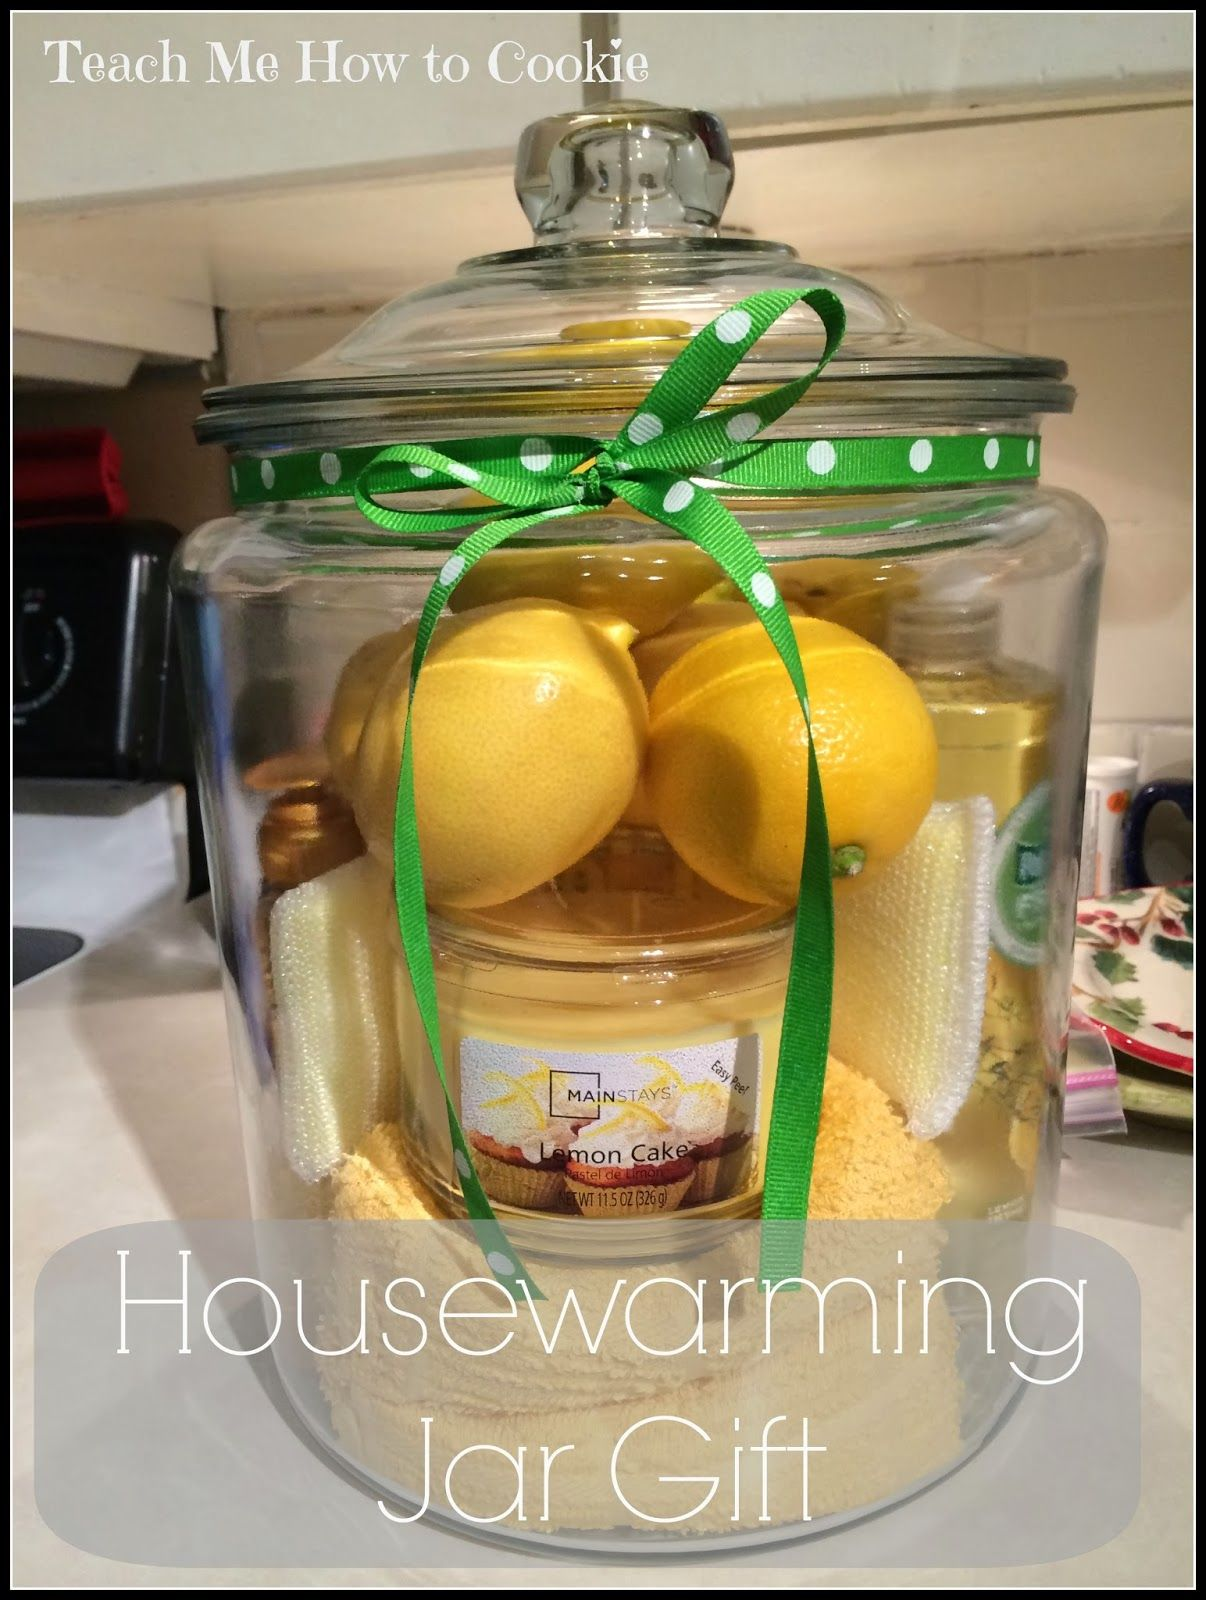 diy house warming jar gift and other great gift ideas! | gift